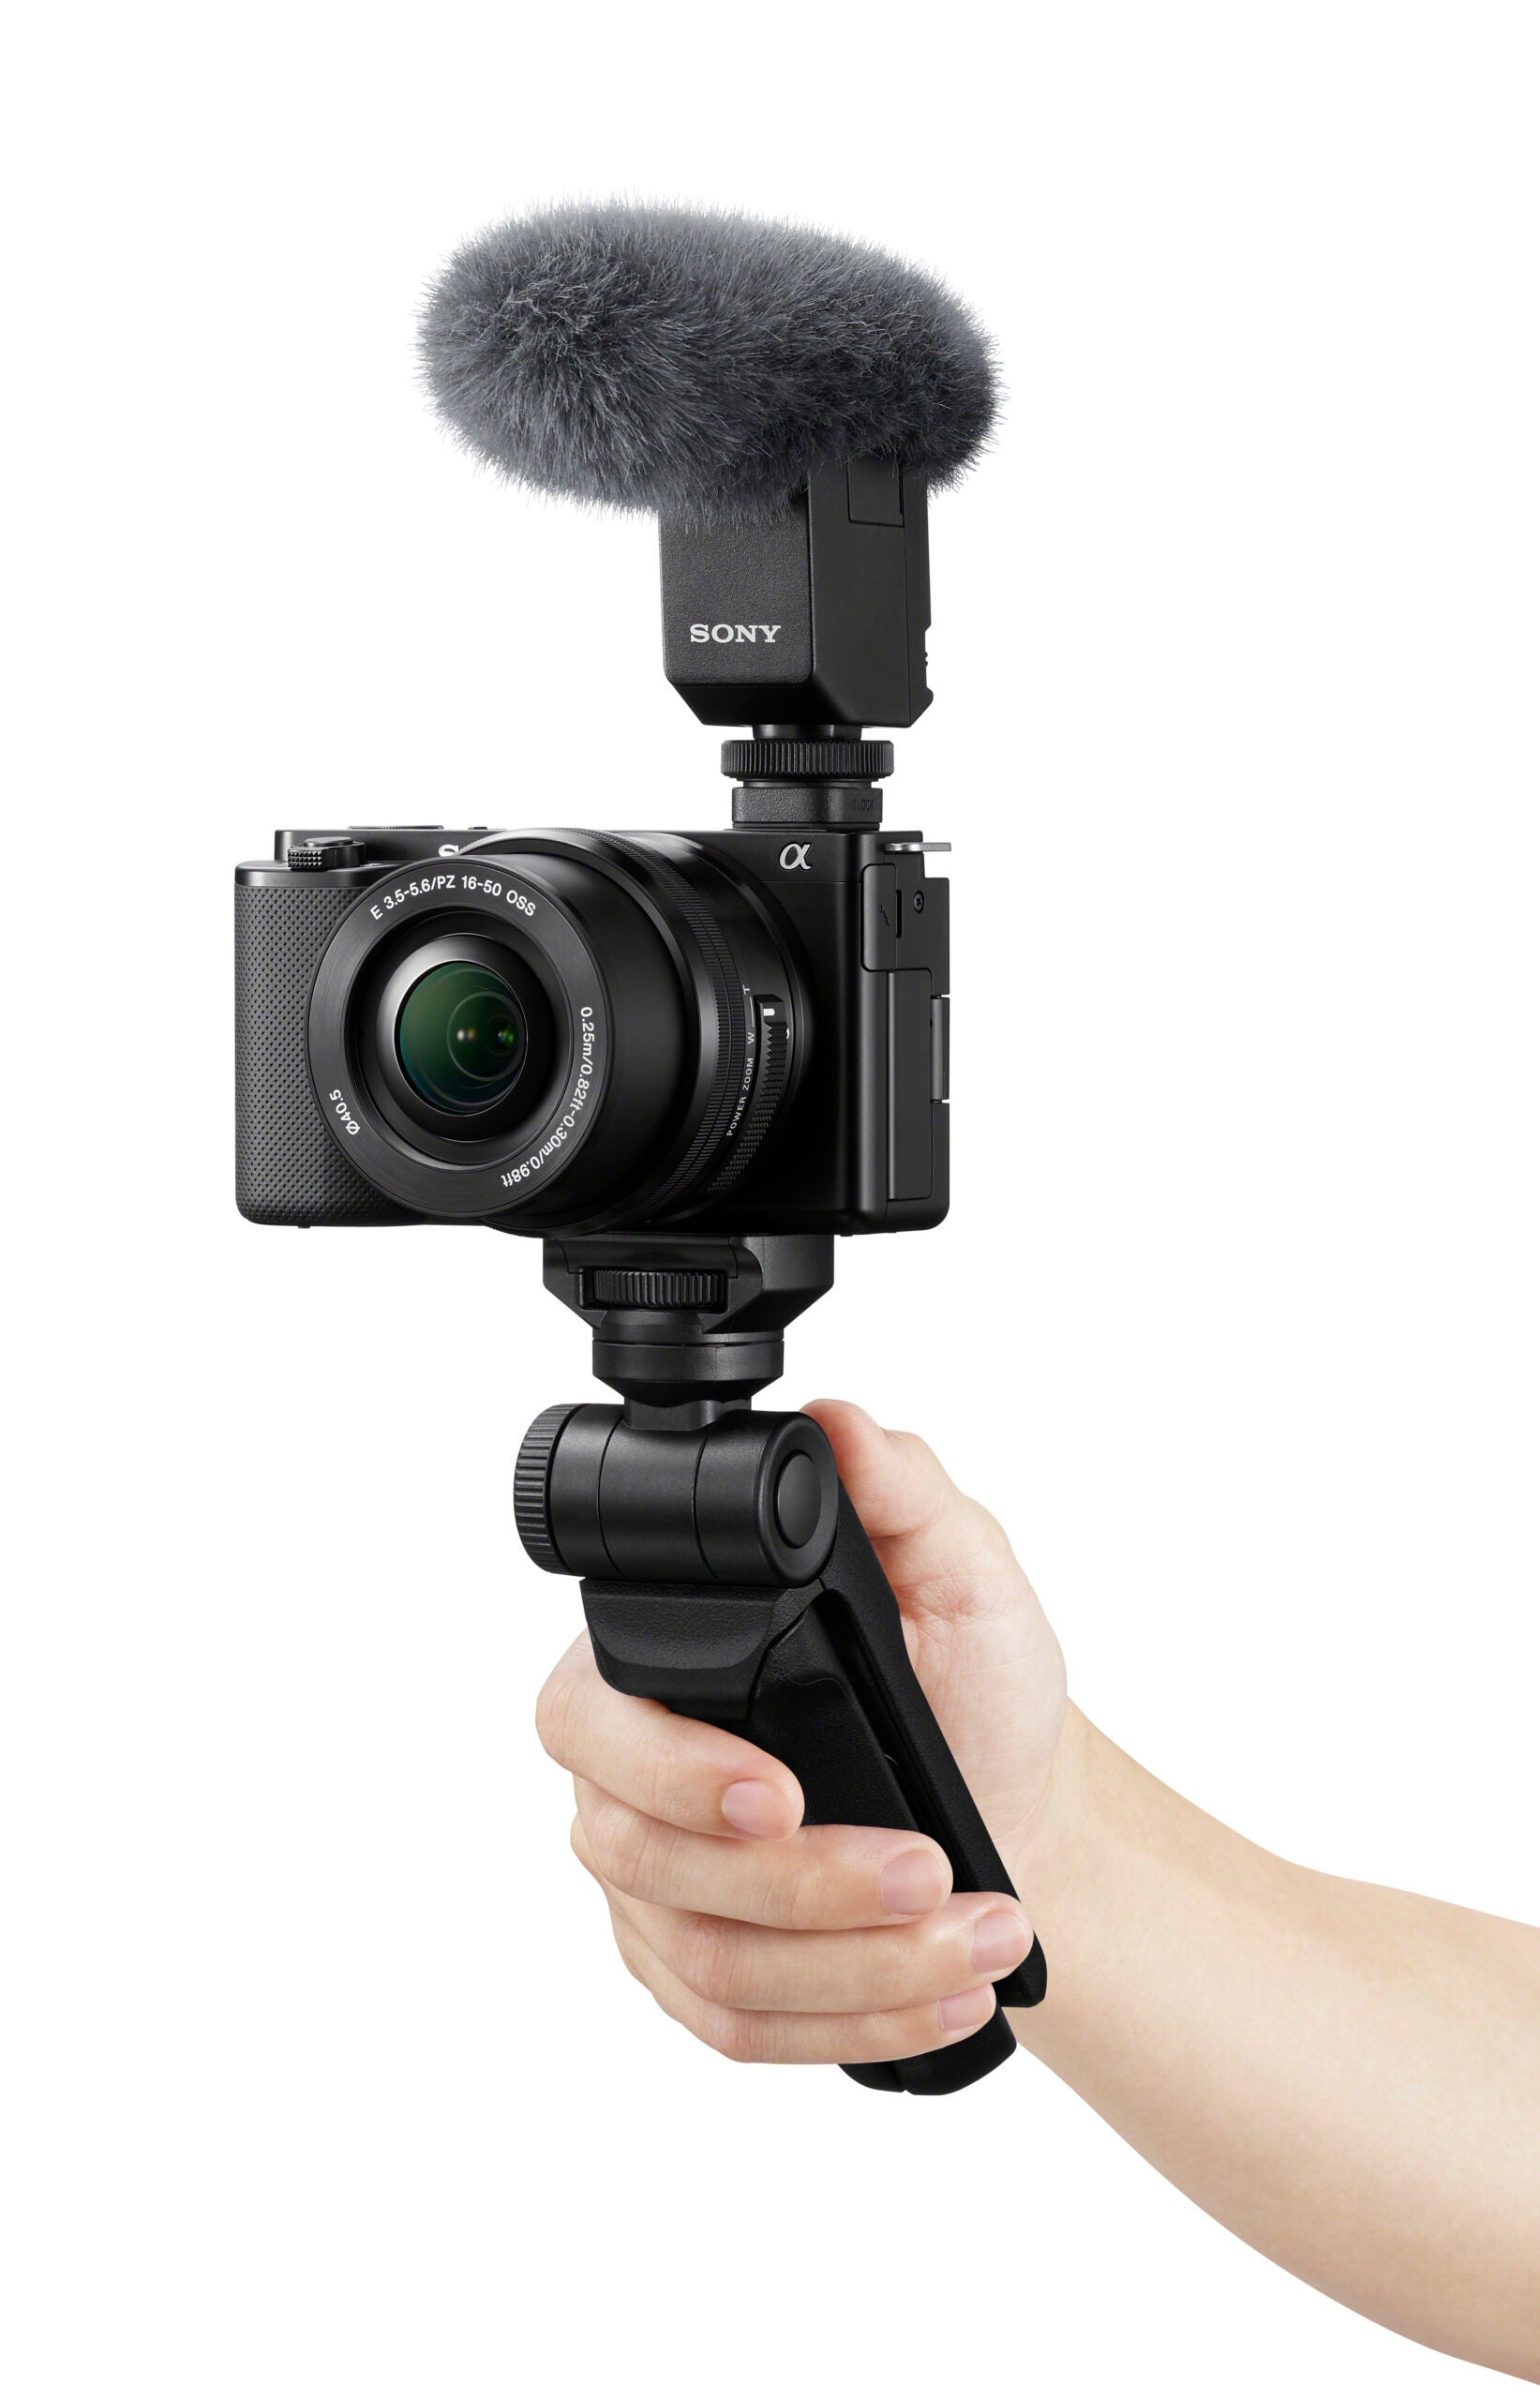 Sony ZV-E10 camera on a grip with a mcirophone